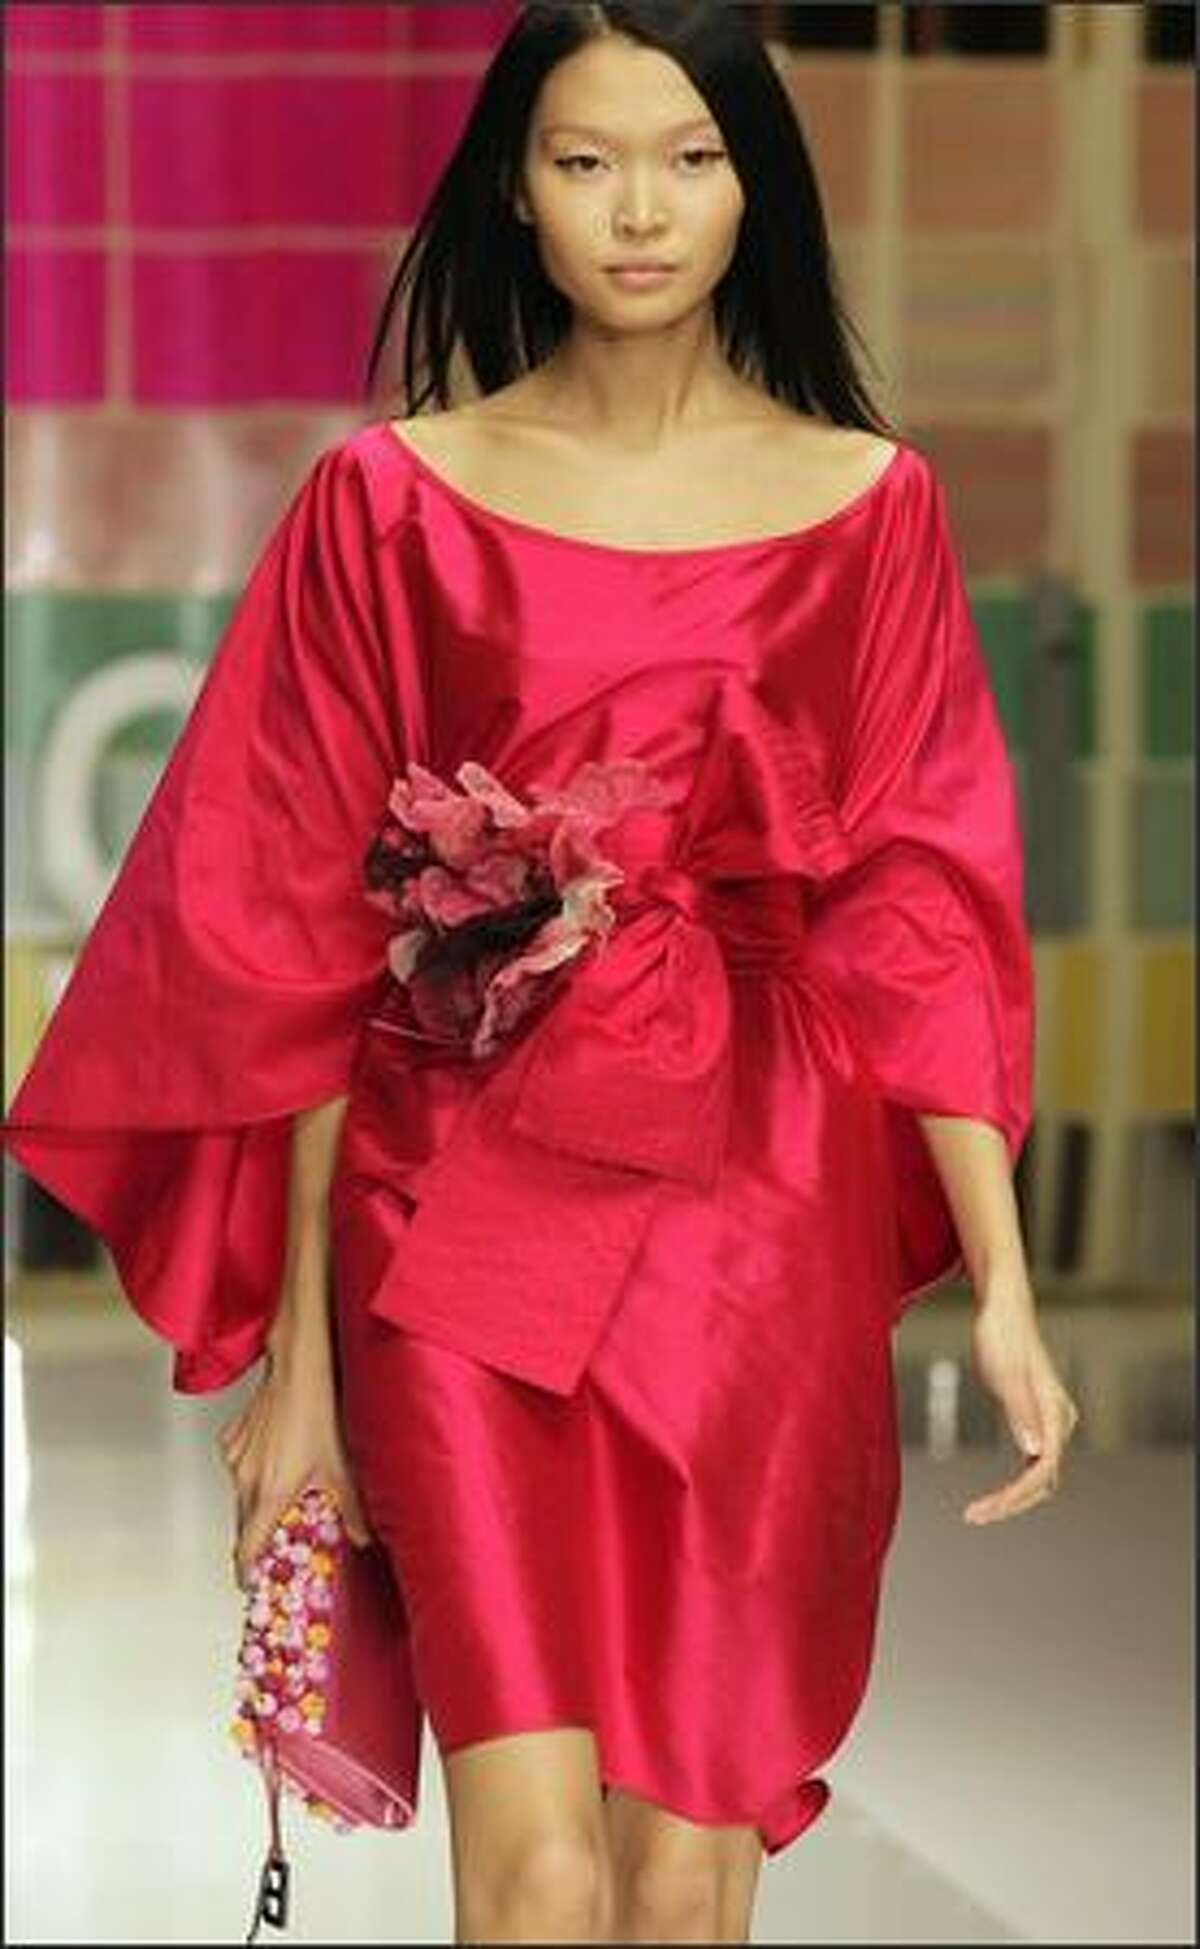 A model presents a creation by Italian designer Laura Biagiotti during the Spring/Summer 2008 collections of the Milan ready-to-wear fashion shows.